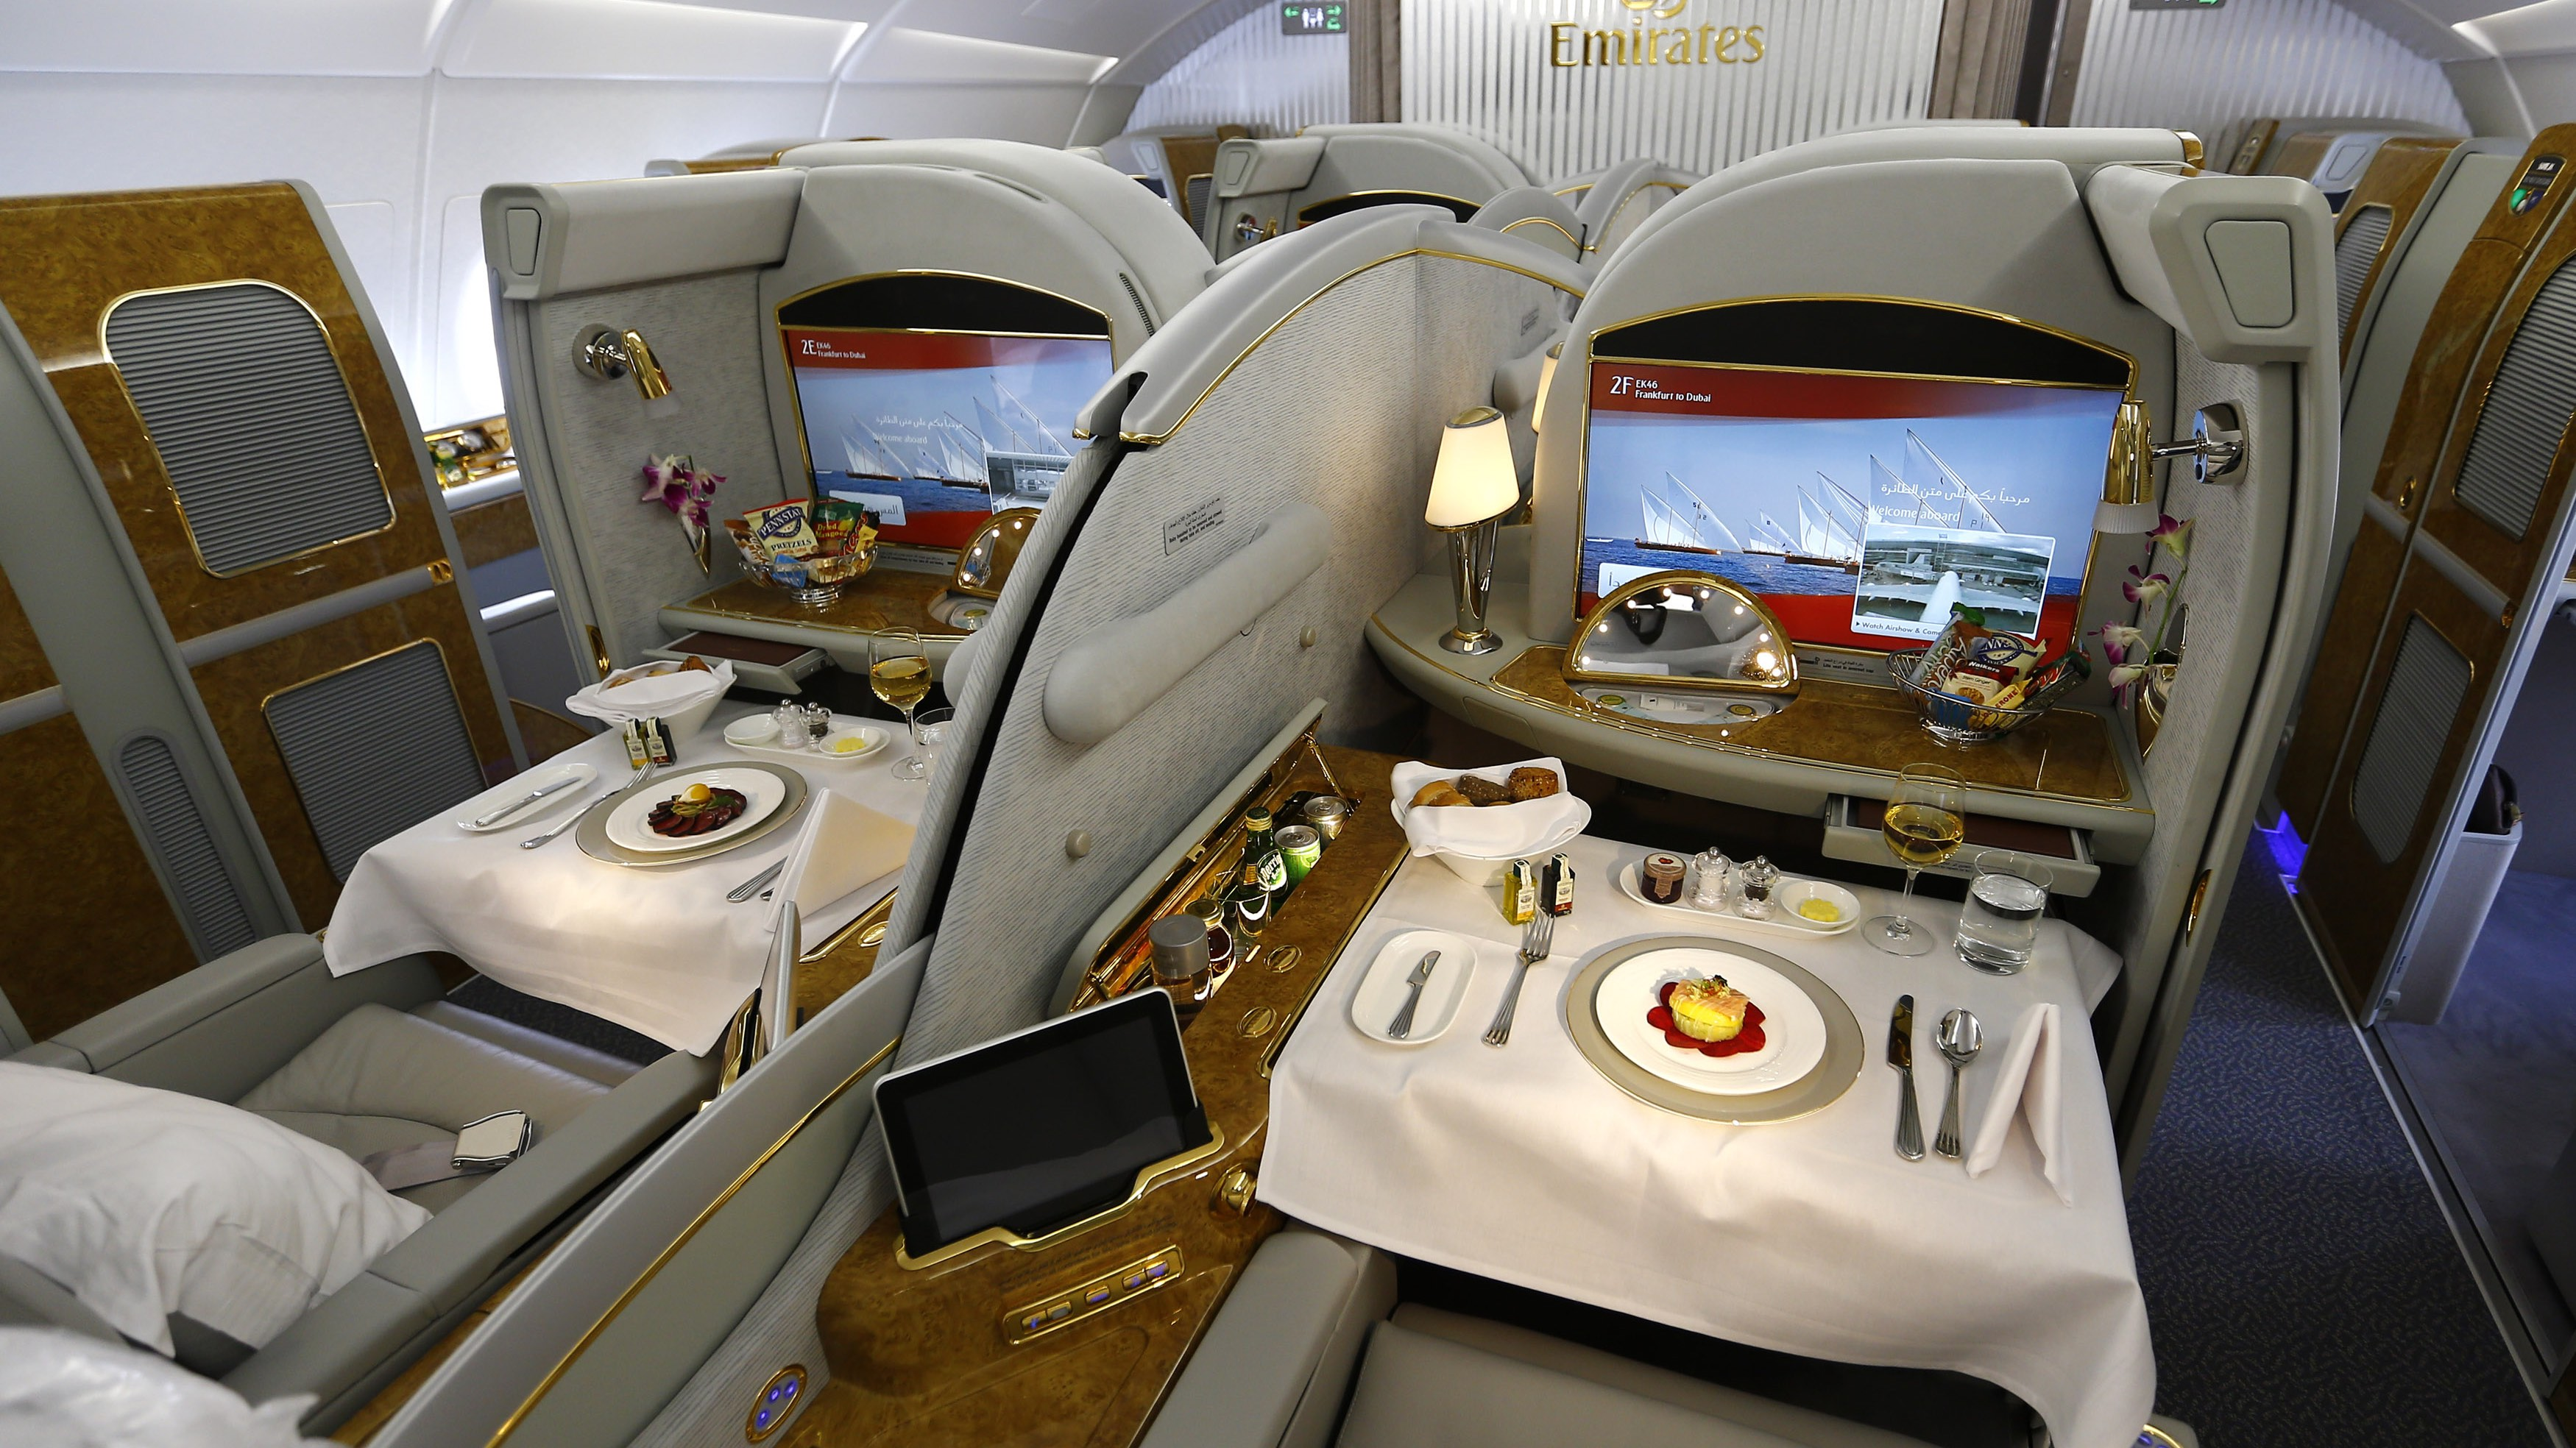 Two first class suites are pictured inside an Airbus A380 of United Arab Emirates air carrier Emirates after the first landing of the plane in Frankfurt's airport, September 1, 2014. REUTERS/Kai Pfaffenbach (GERMANY - Tags: TRANSPORT BUSINESS TRAVEL)